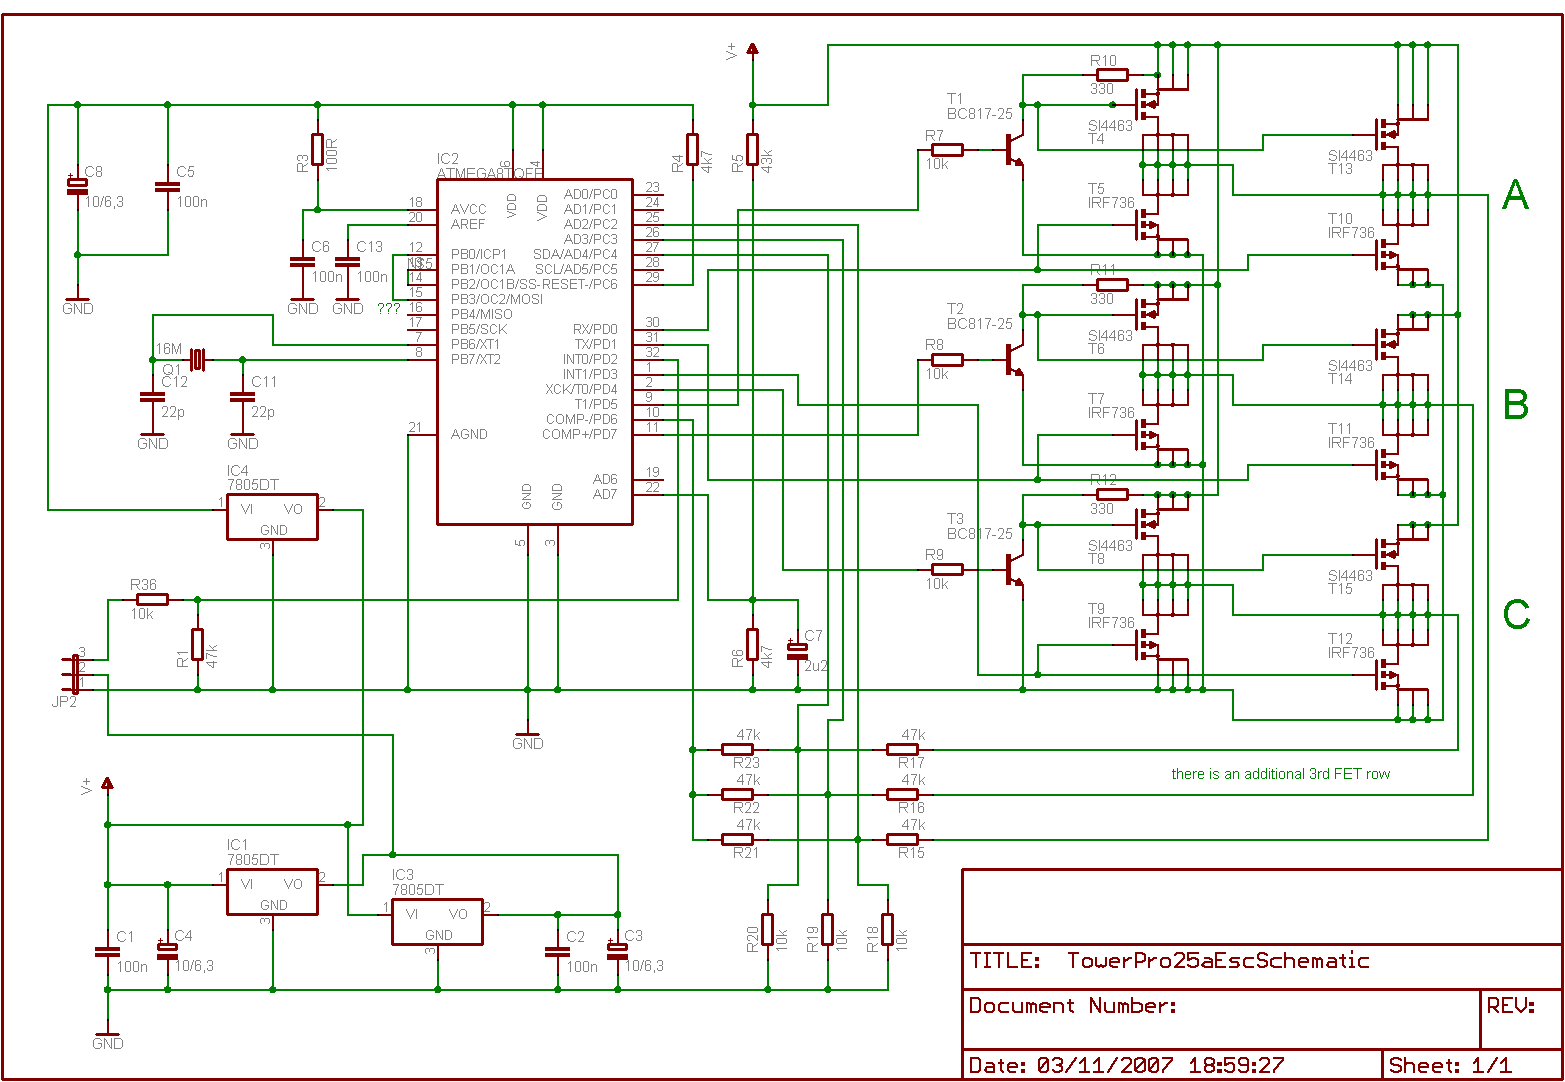 brushless motor controller schematic diagram download esc schematic simple esc circuit diagram [ 1565 x 1082 Pixel ]